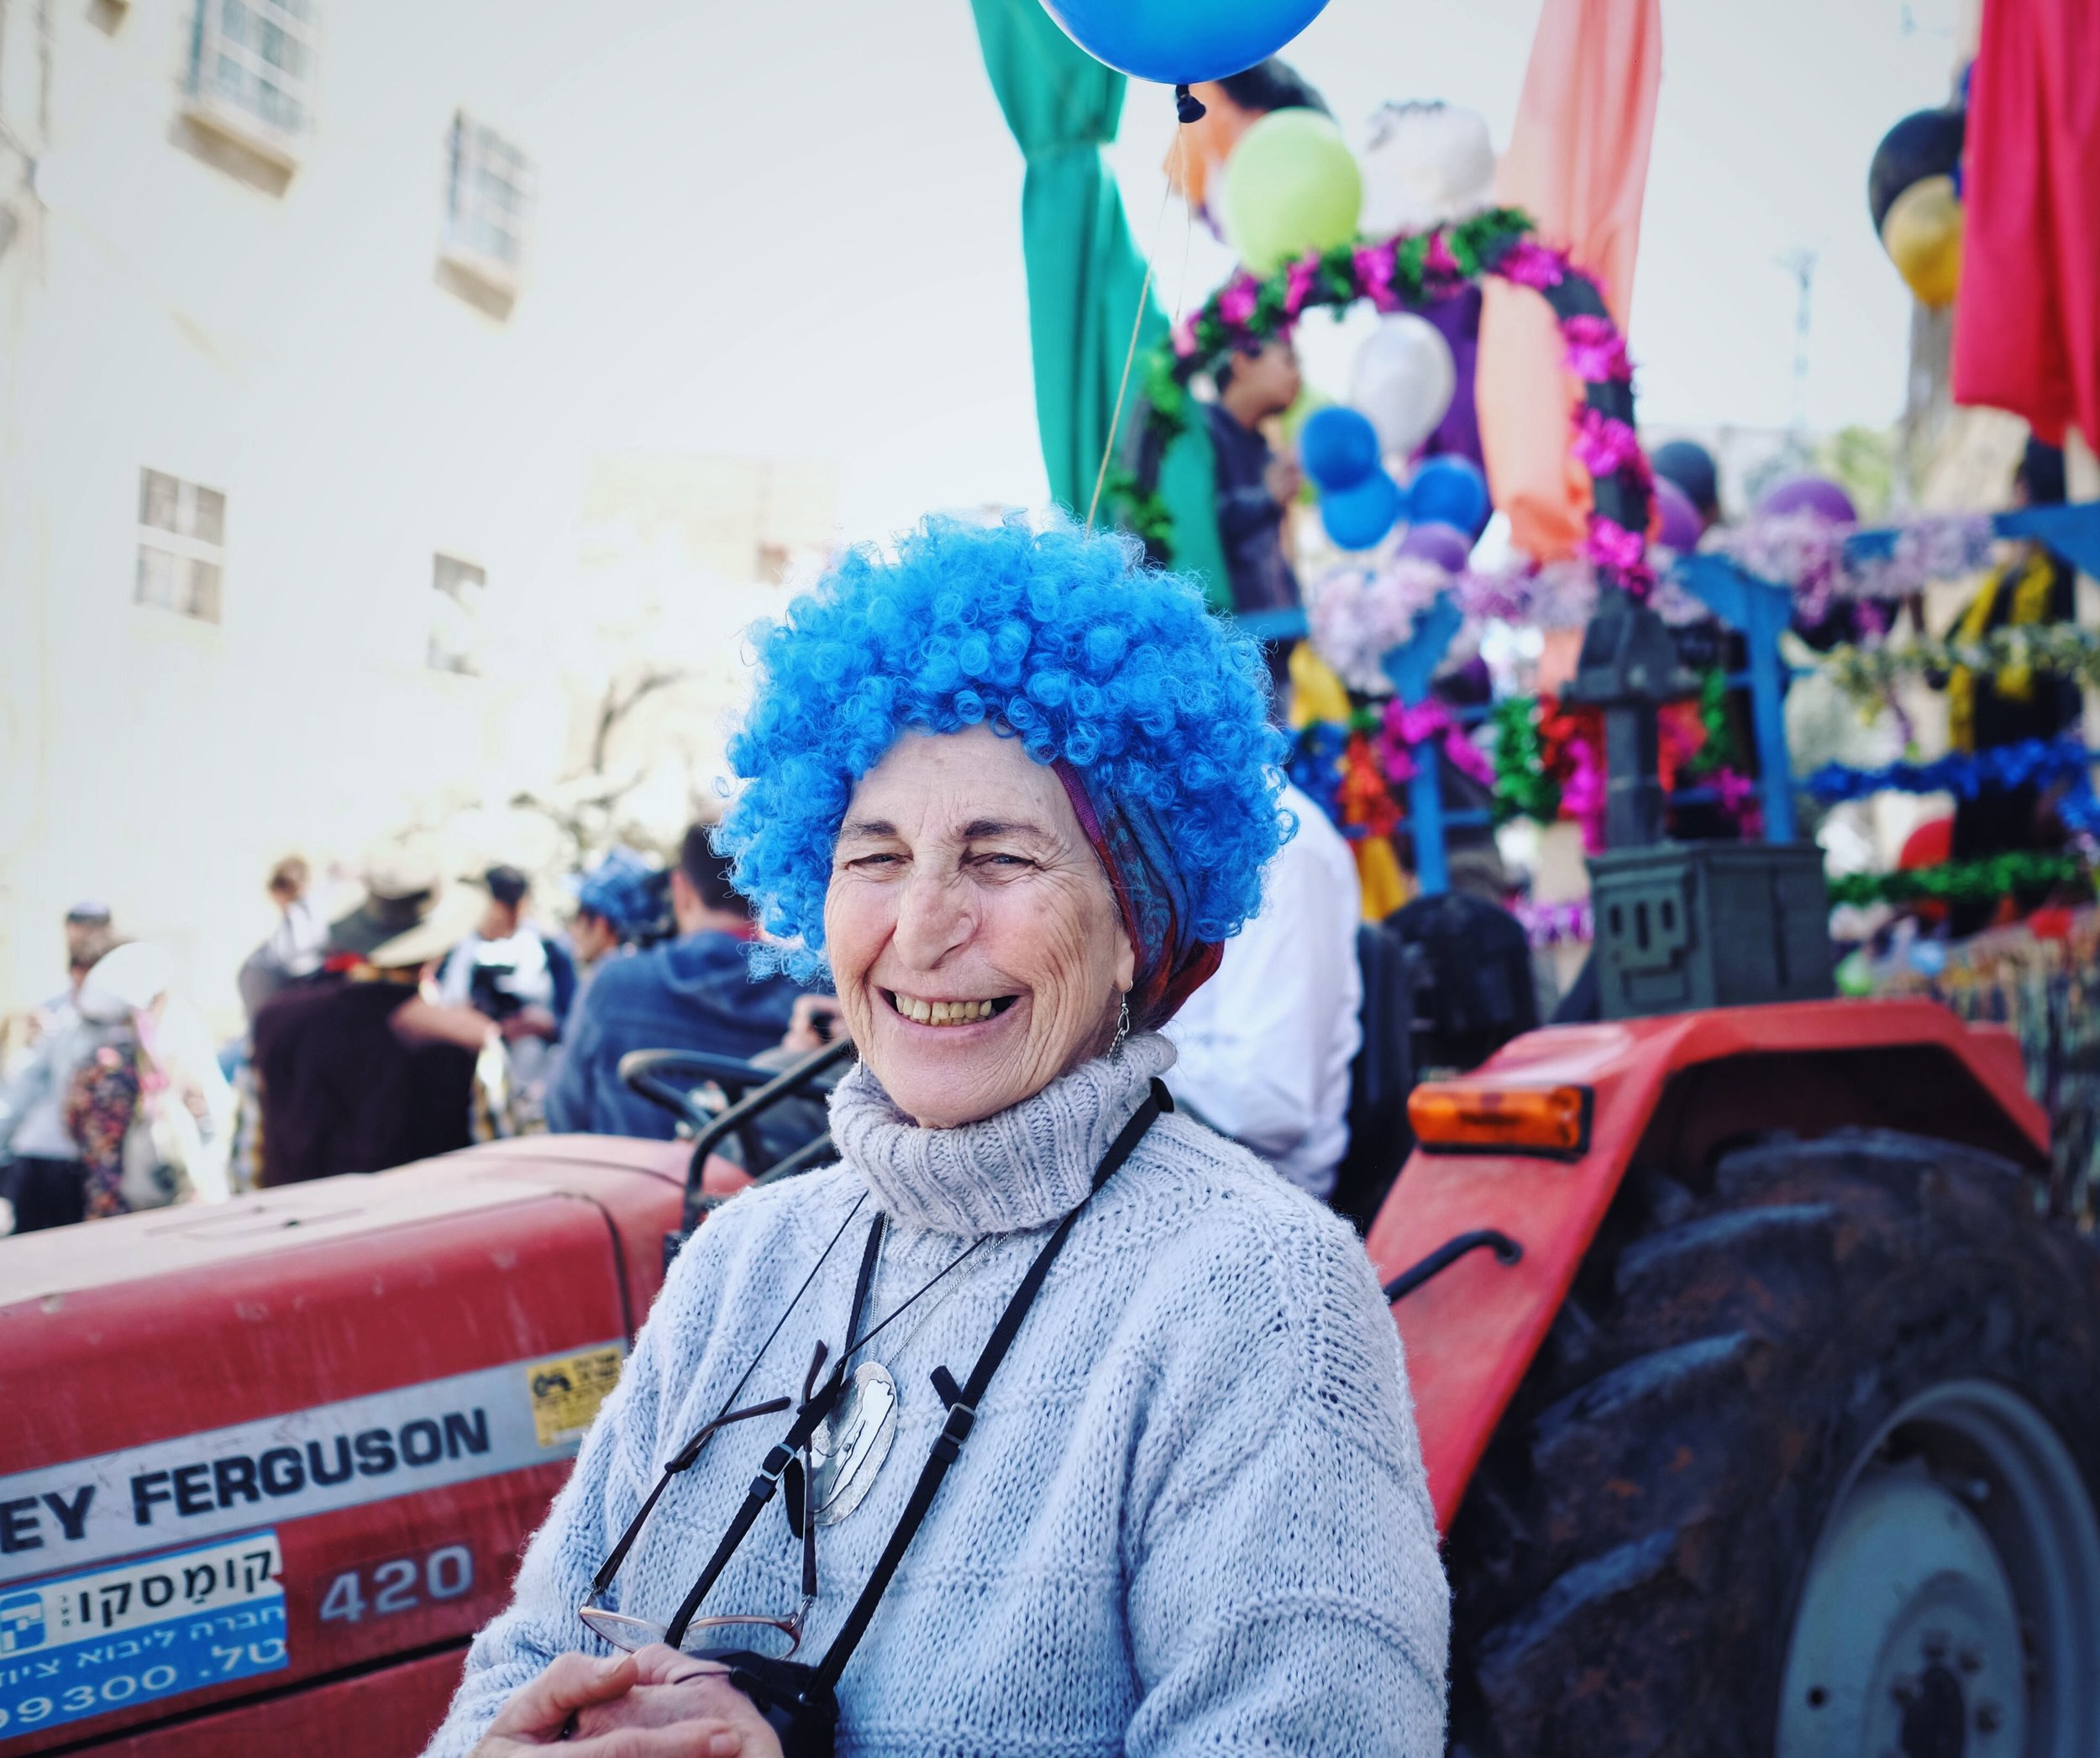 """Tamar Halfon from South Carolina celebrates Purim in the West Bank city of Hebron.I asked about the camera around her neck. """"If they throw a stone, now I'll be able to know who it was"""" she said."""